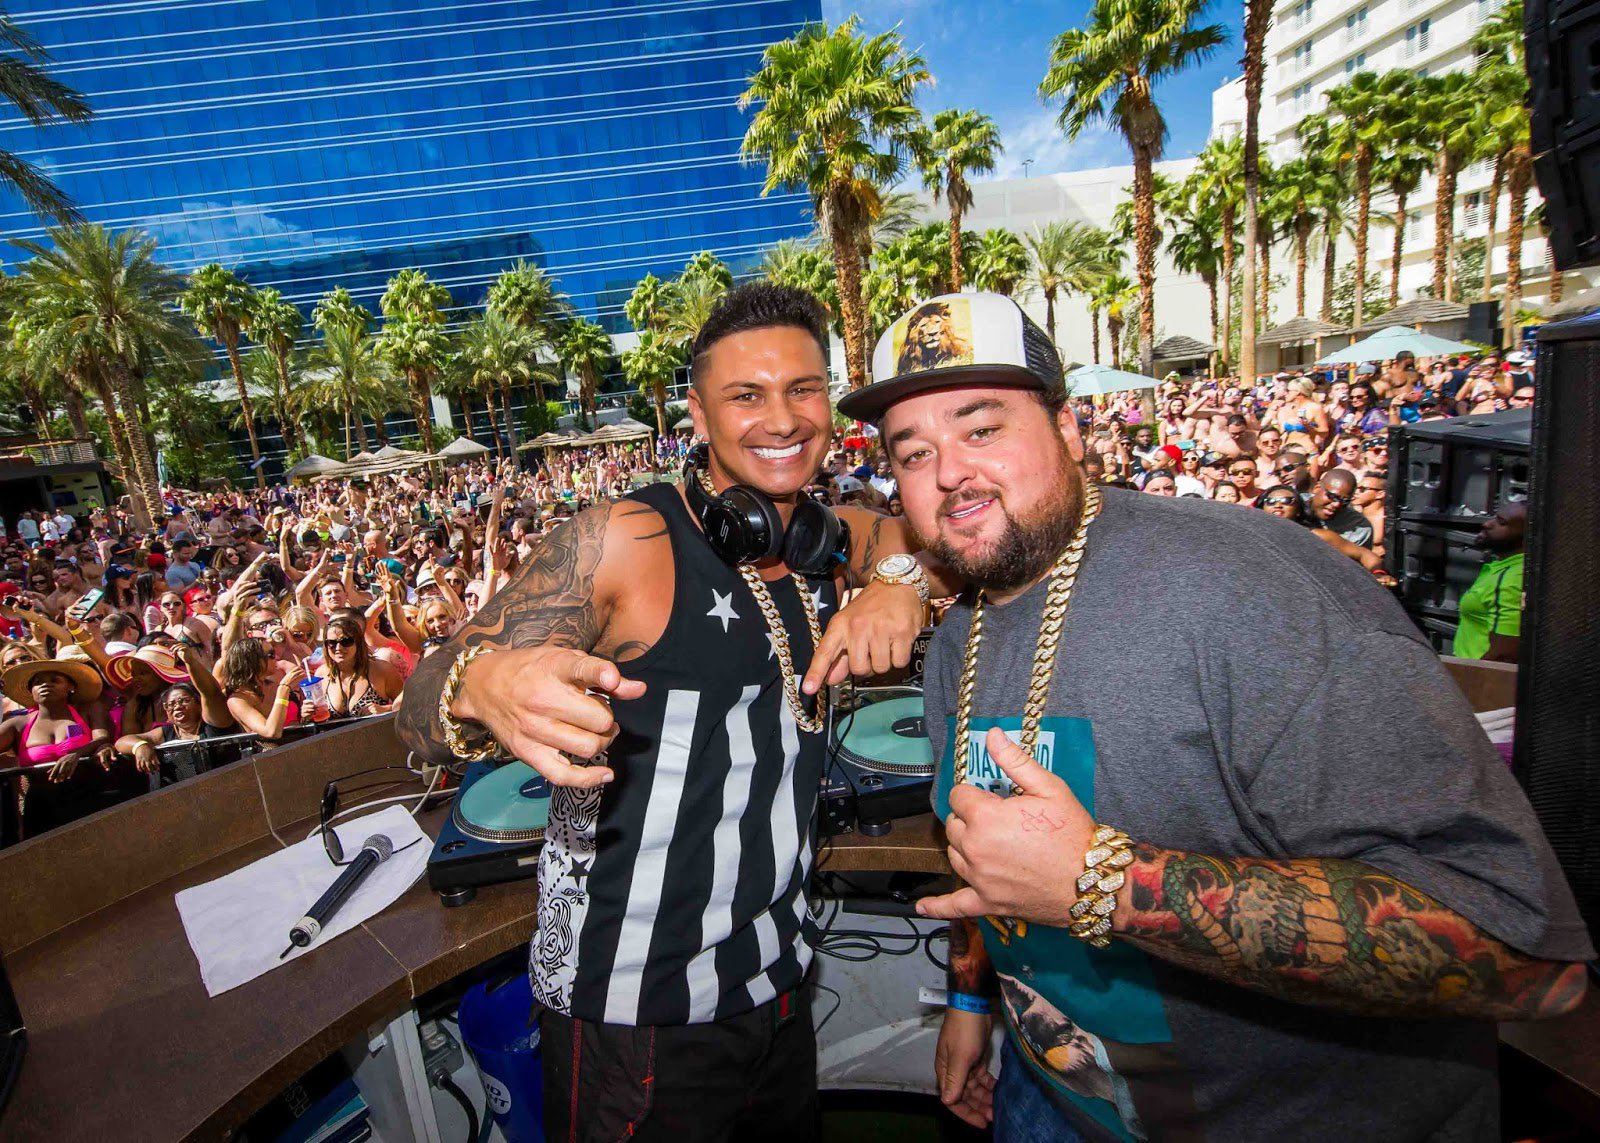 Dj PAULY D and Chumlee